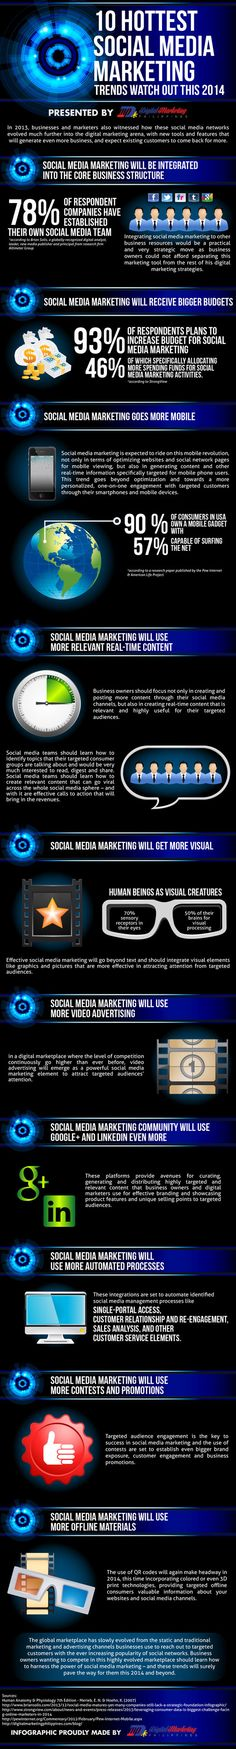 10-Hottest-Social-Media-Marketing-Trends-Watch-Out-2014 | #Infographics